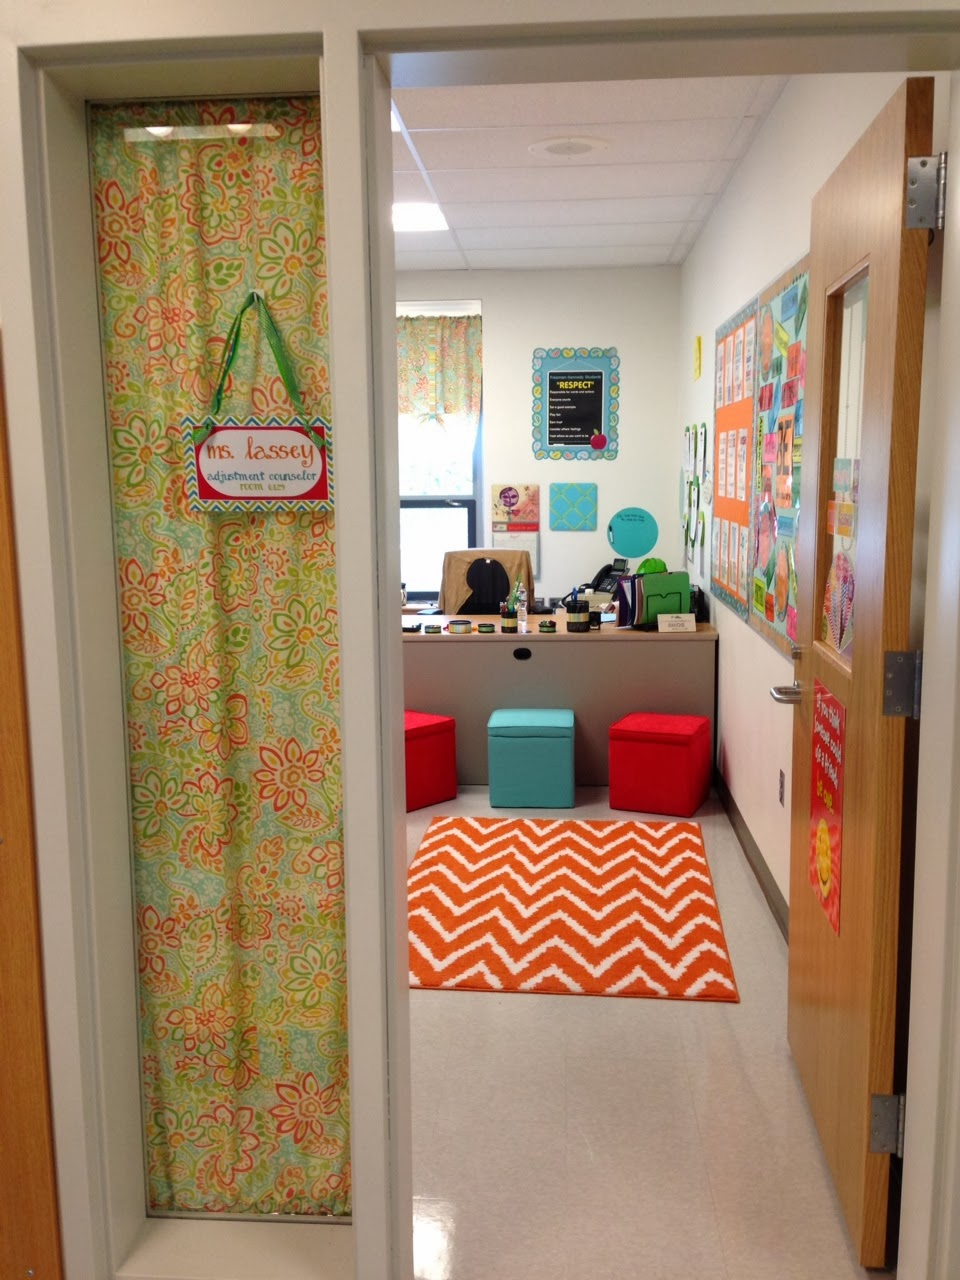 Creative Elementary School Counselor: November 2013